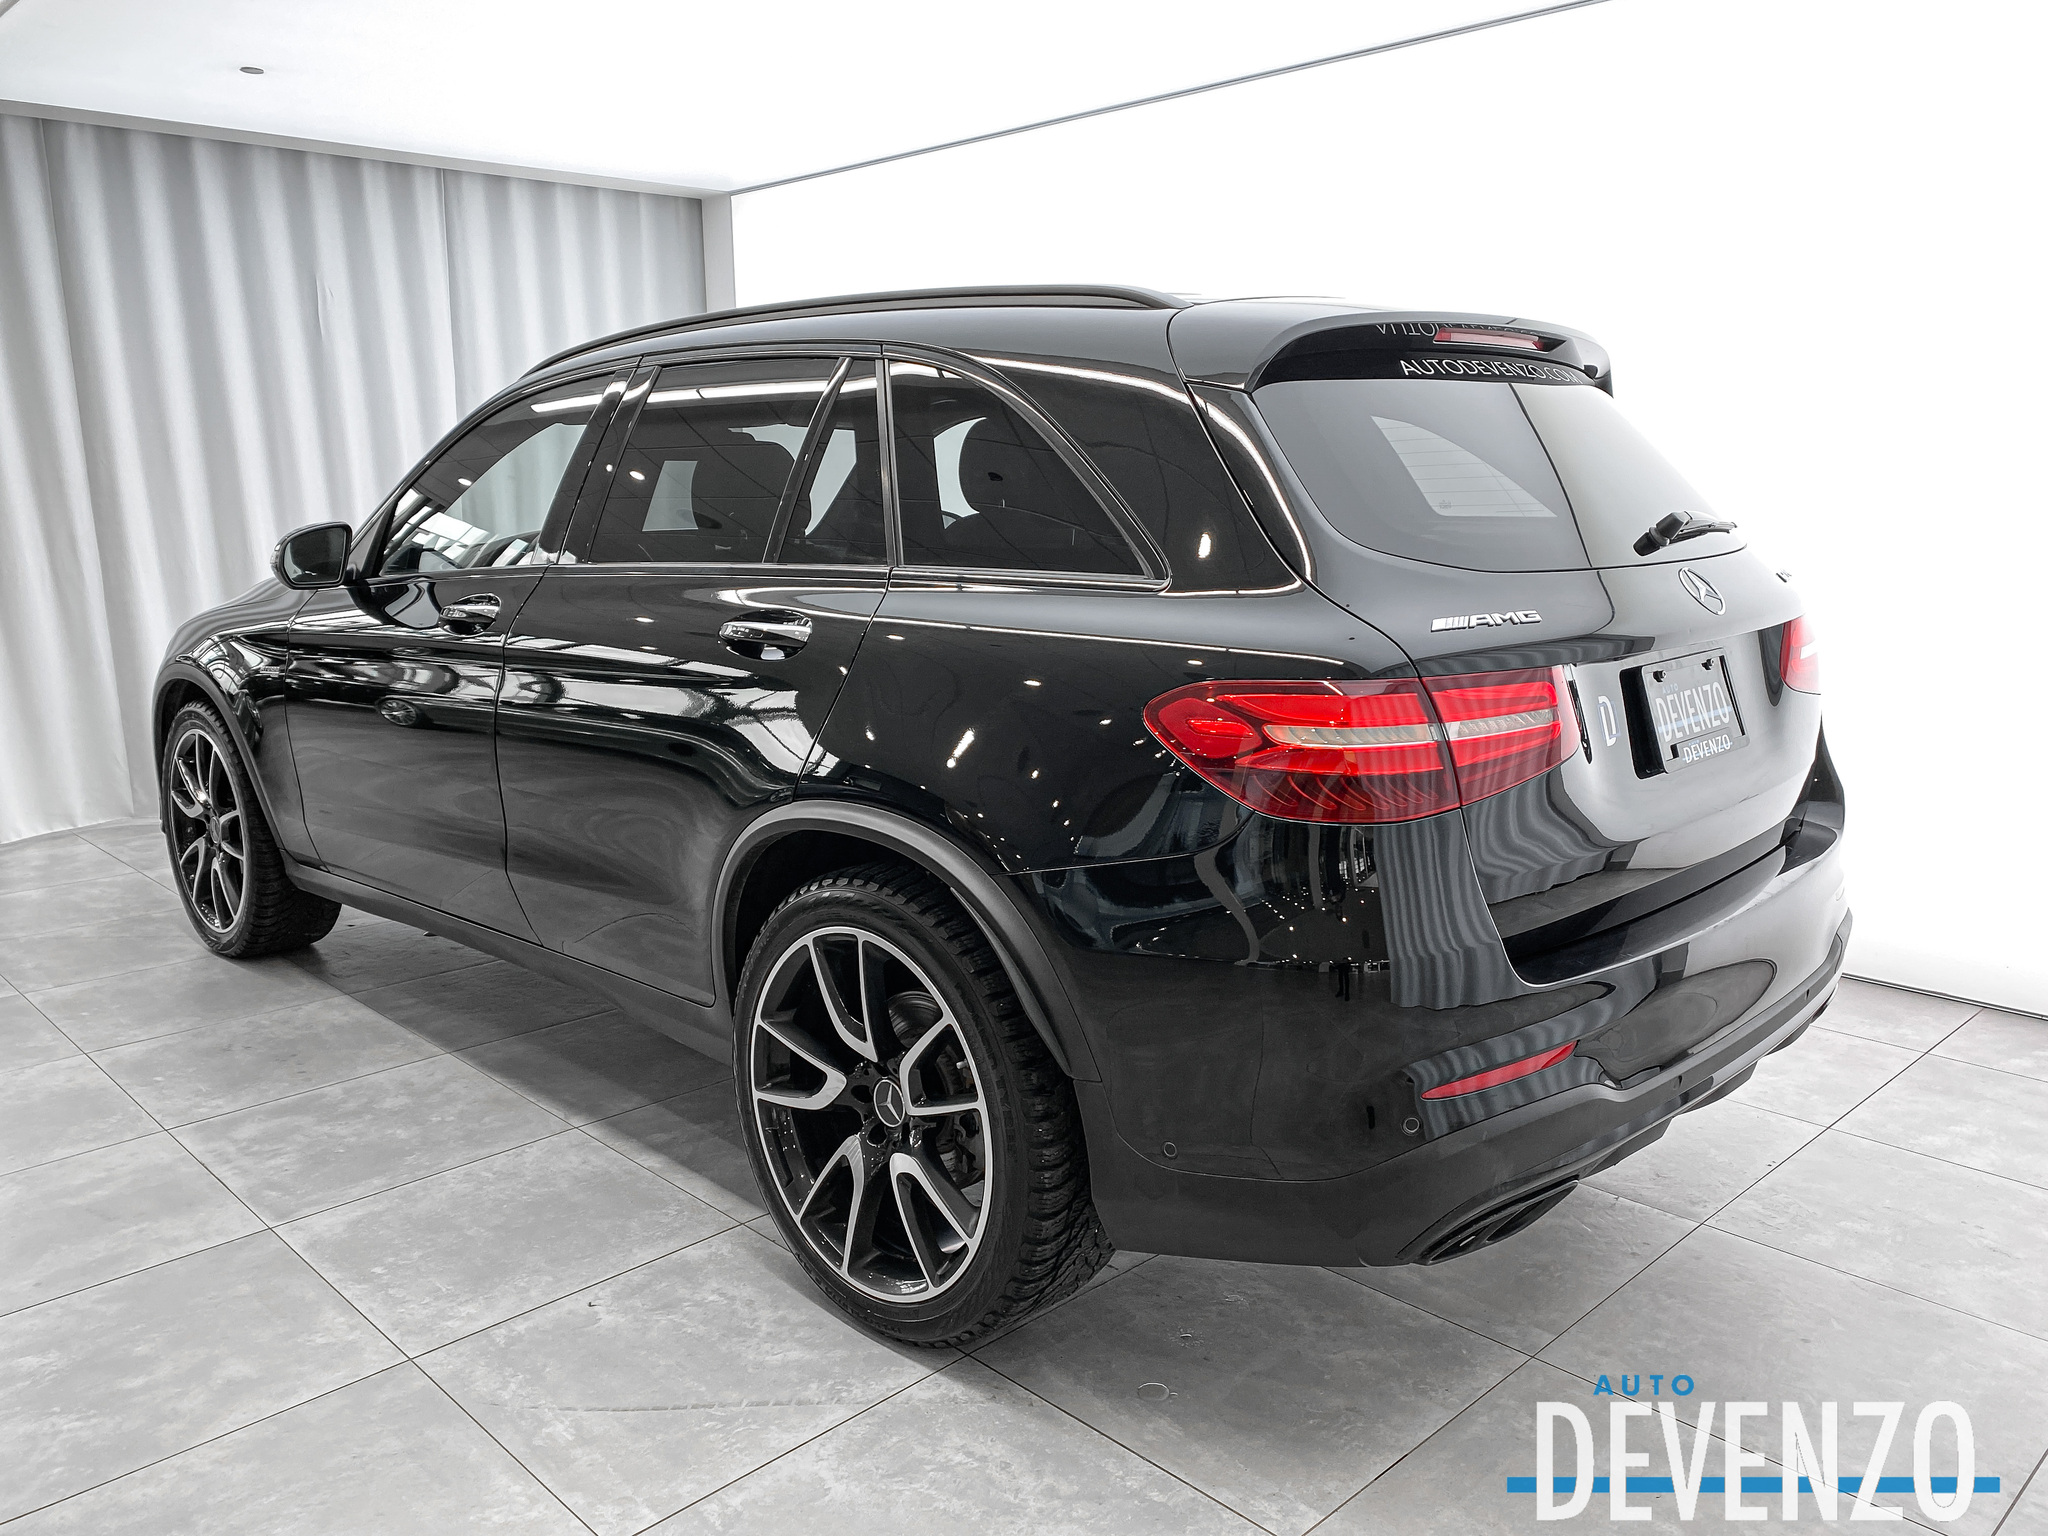 2018 Mercedes-Benz GLC AMG GLC43 4MATIC NIGHT / AMG DRIVERS PACK complet